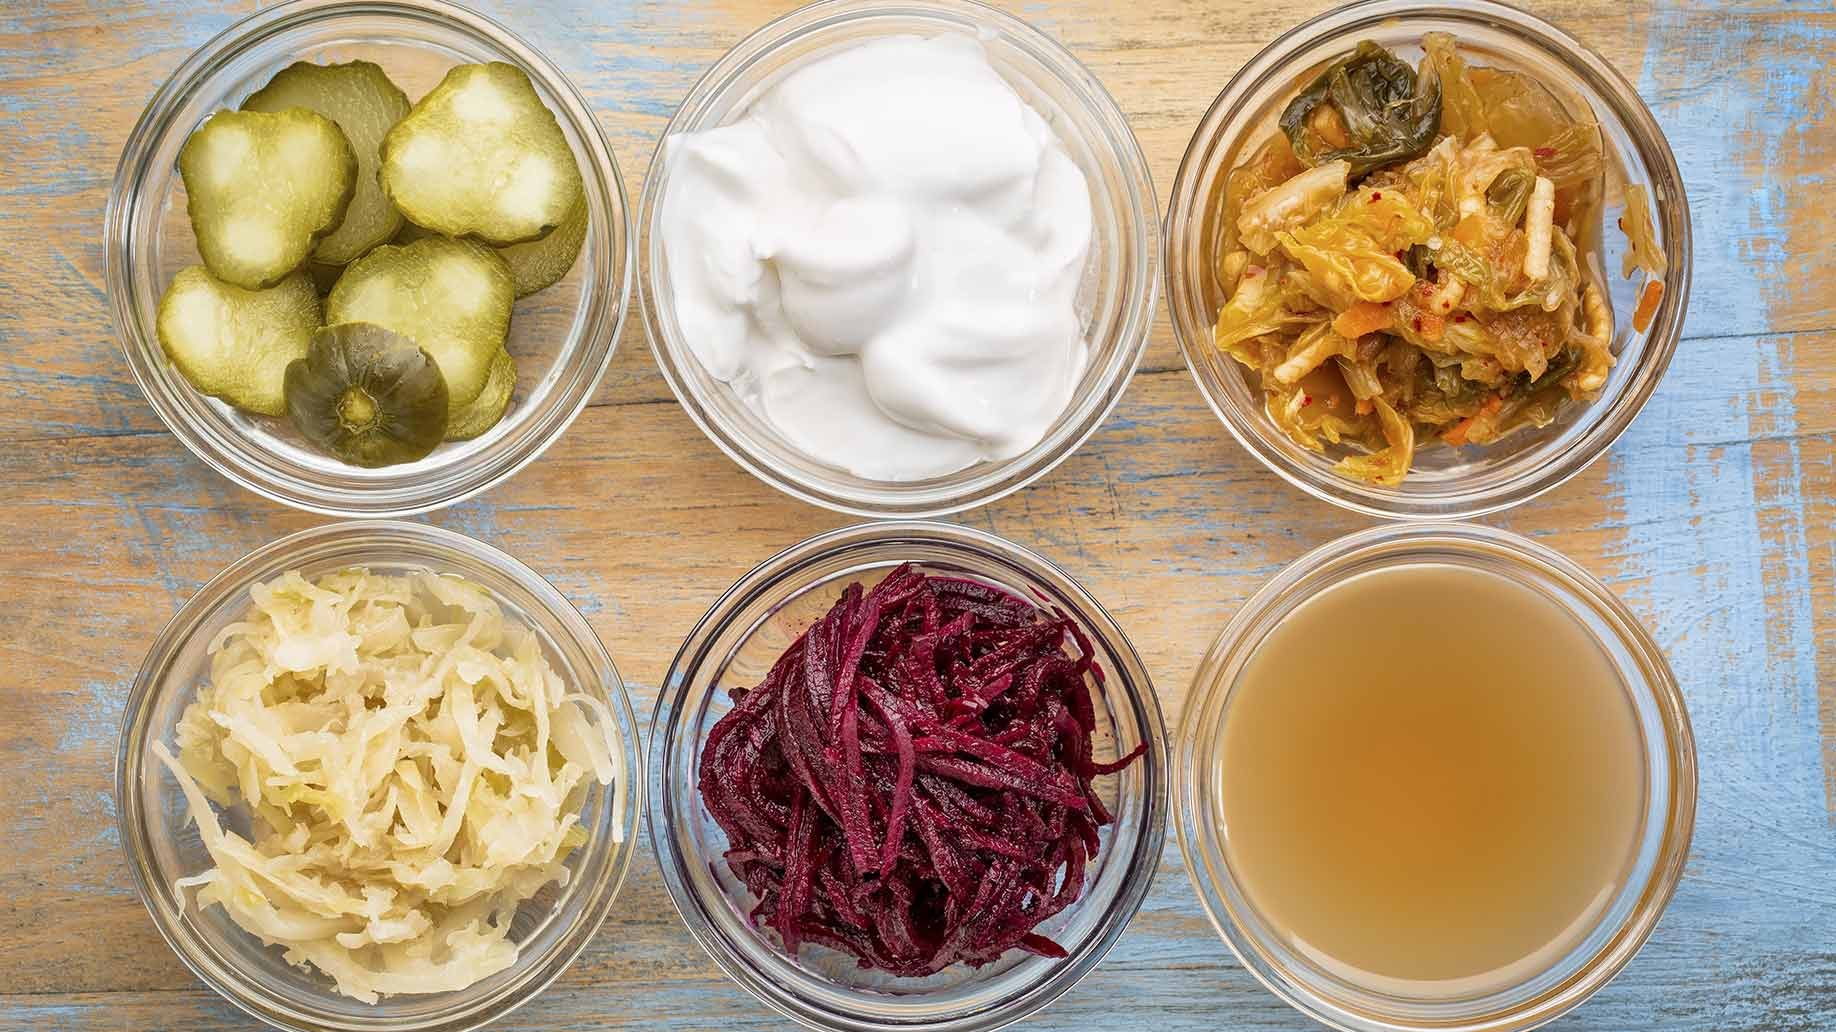 probiotics acne yogurt kimchi fermented gut health bacteria sauerkraut natural remedies